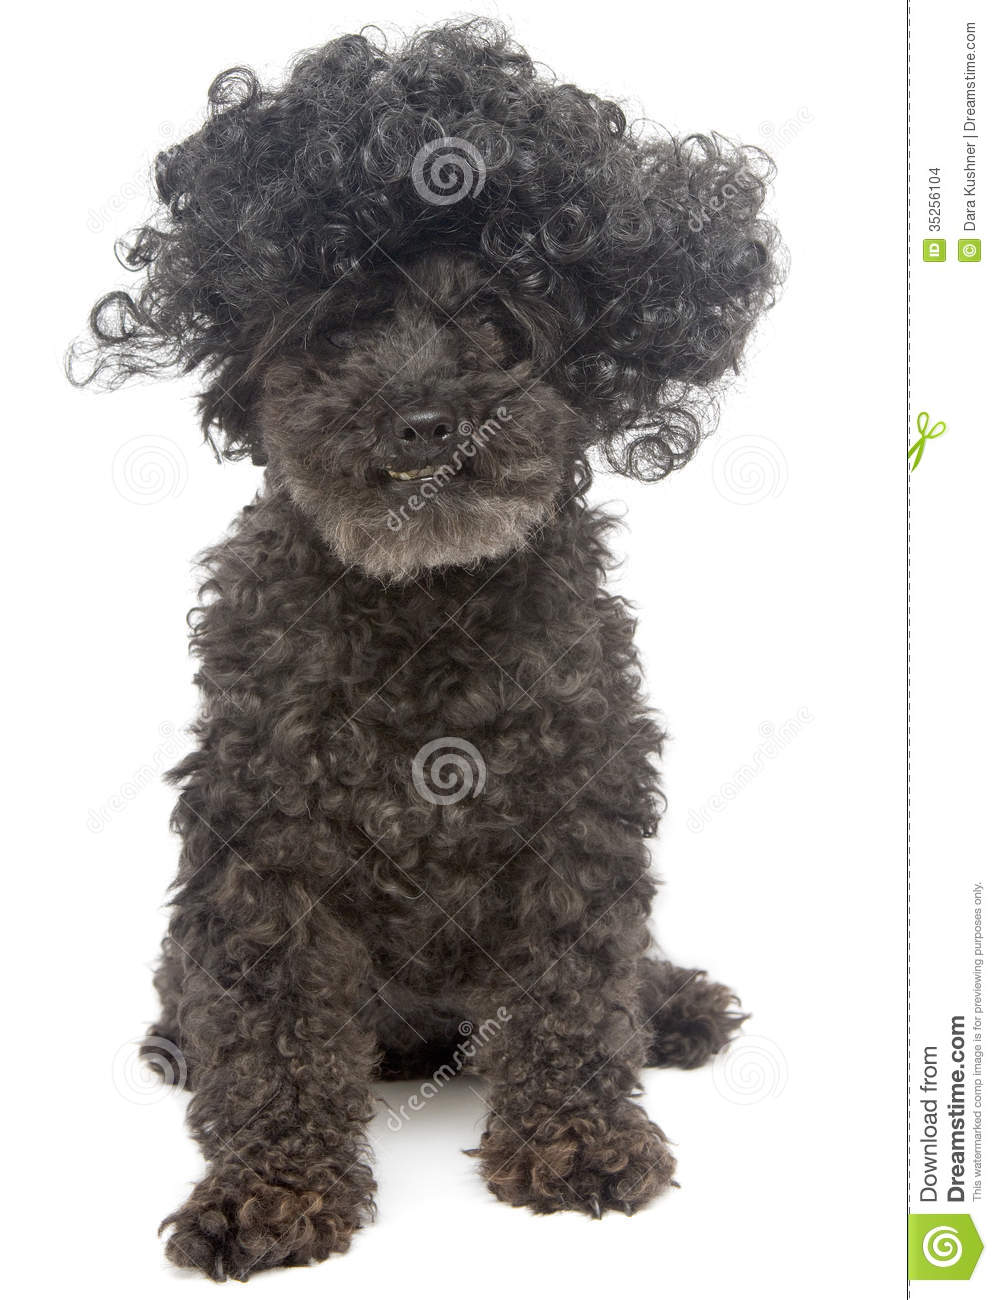 Poodle With Curly Hair Stock Photo Image Of Shaggy Afro